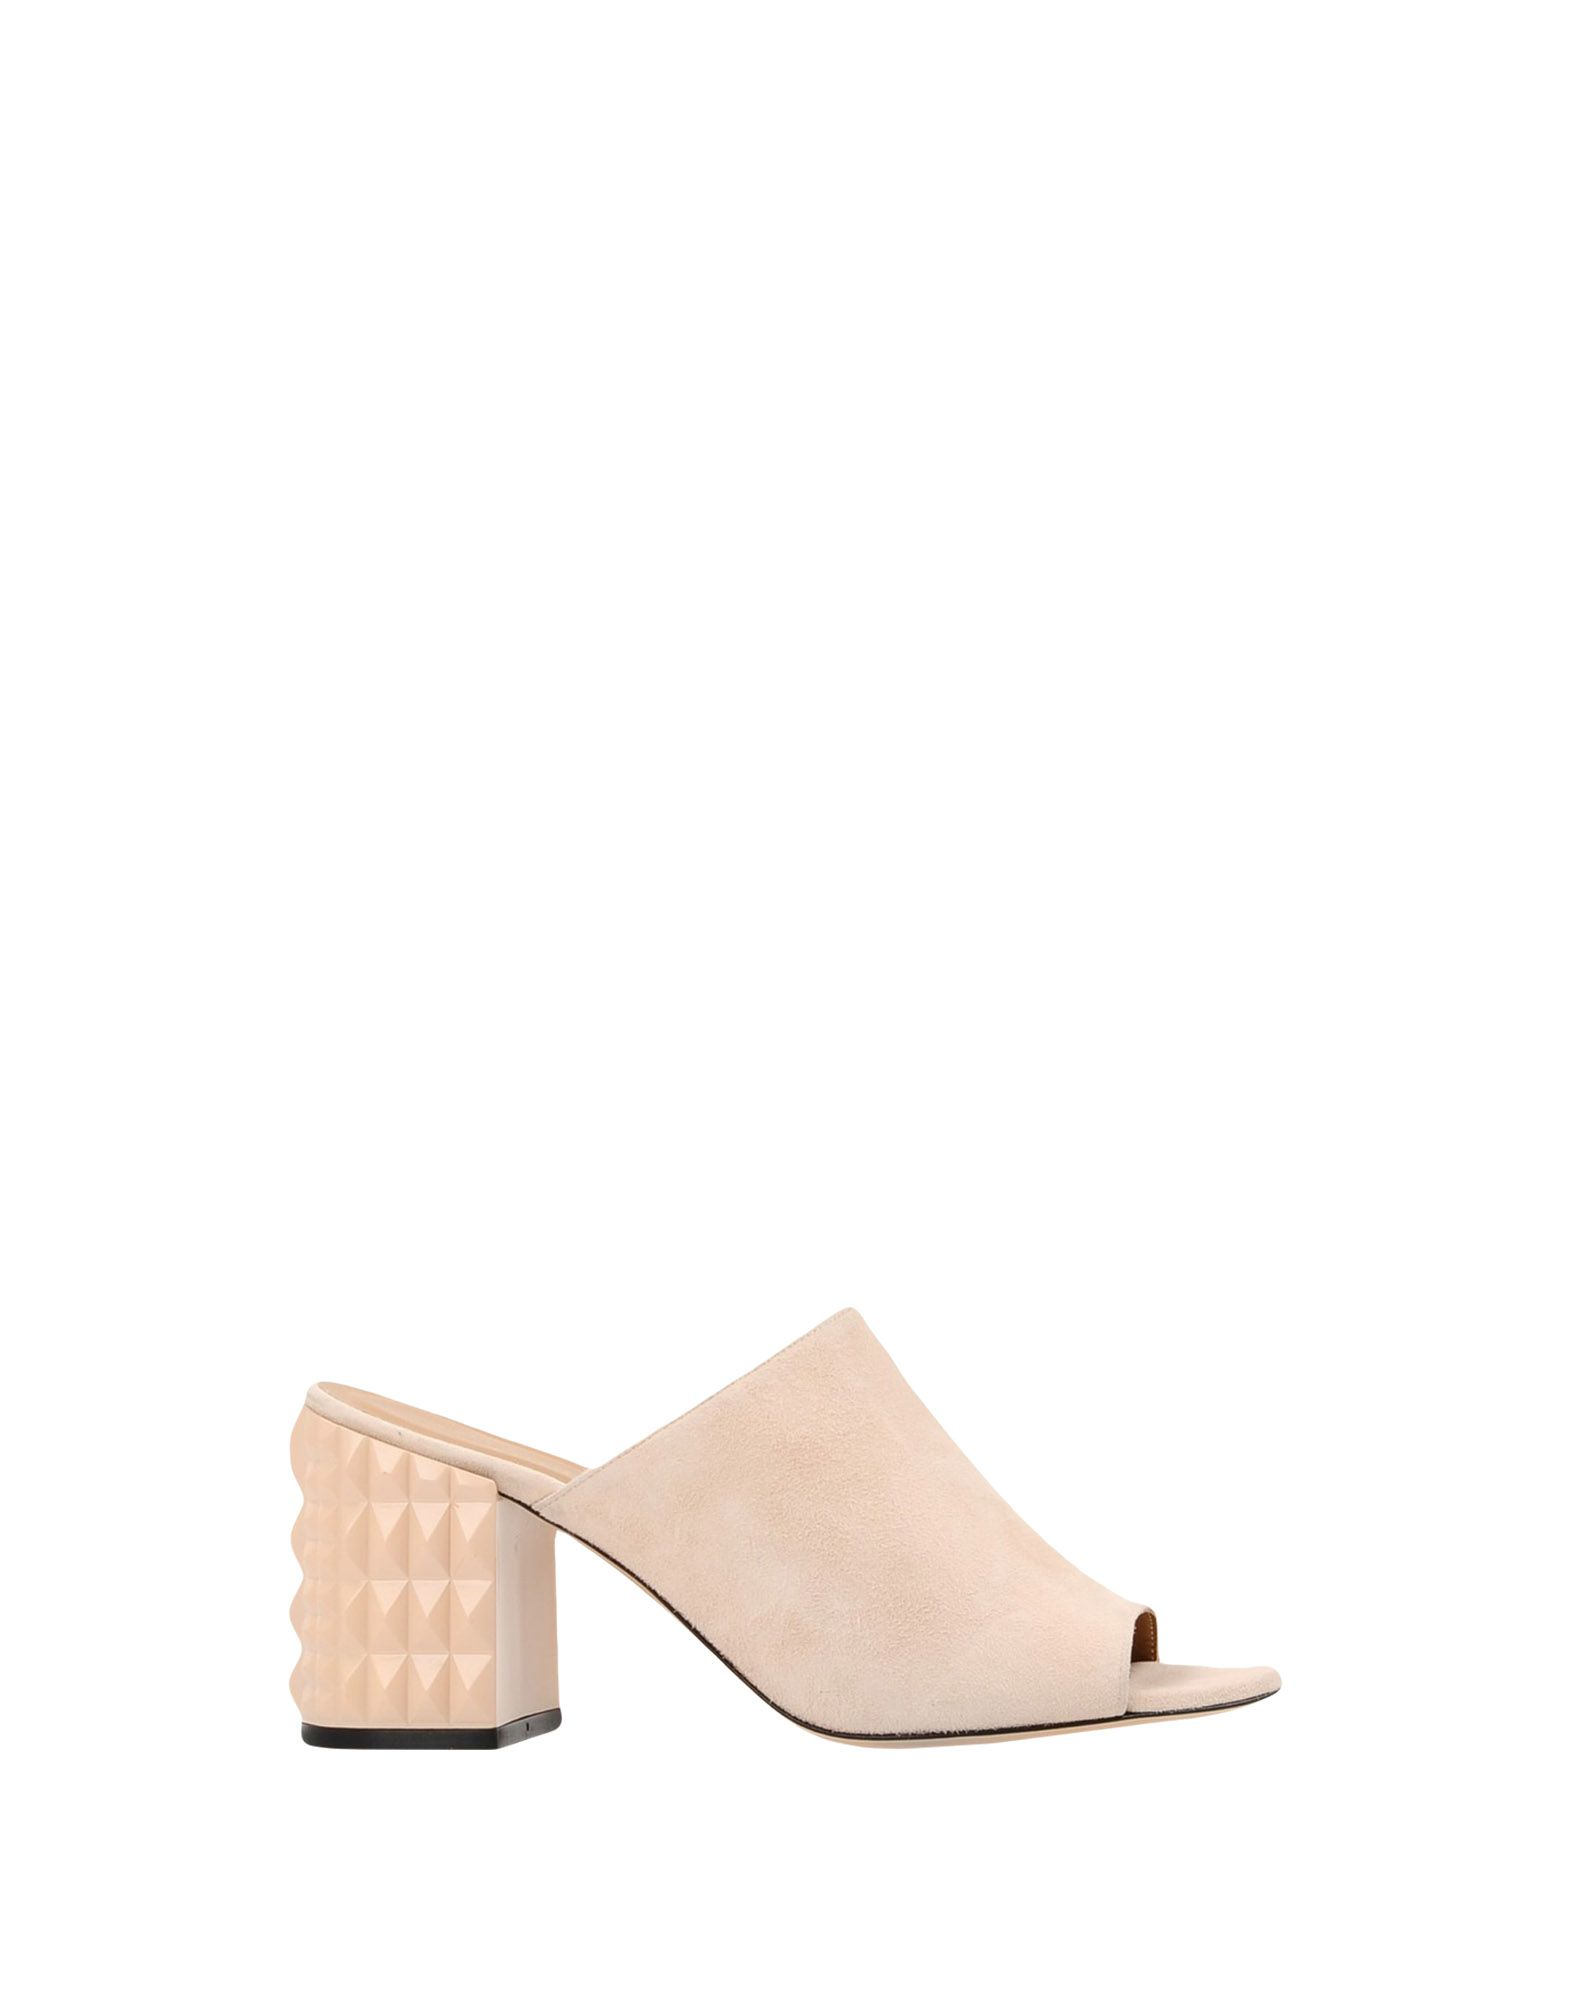 Sandales Stephen Good  London Femme - Sandales Stephen Good  London sur